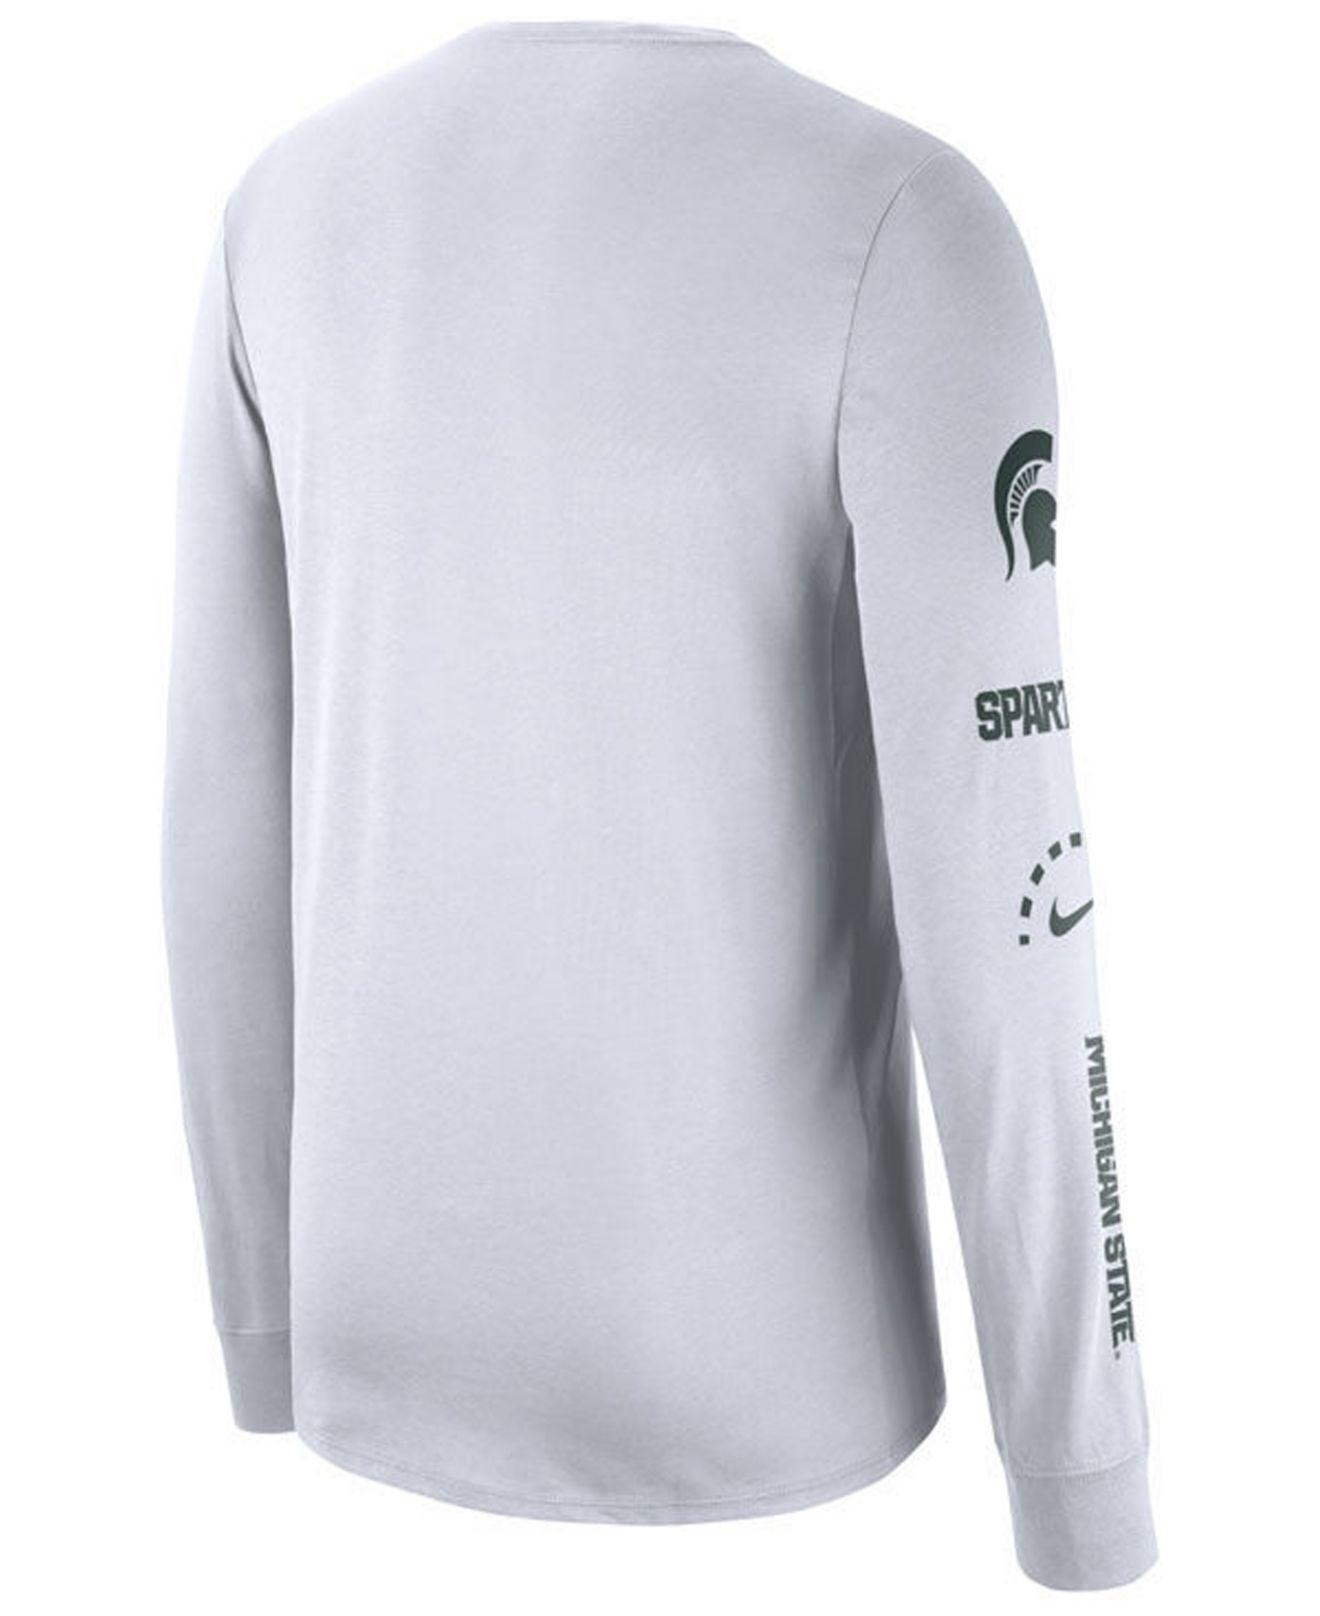 9c578d996c7 Lyst - Nike Michigan State Spartans Long Sleeve Basketball T-shirt in White  for Men